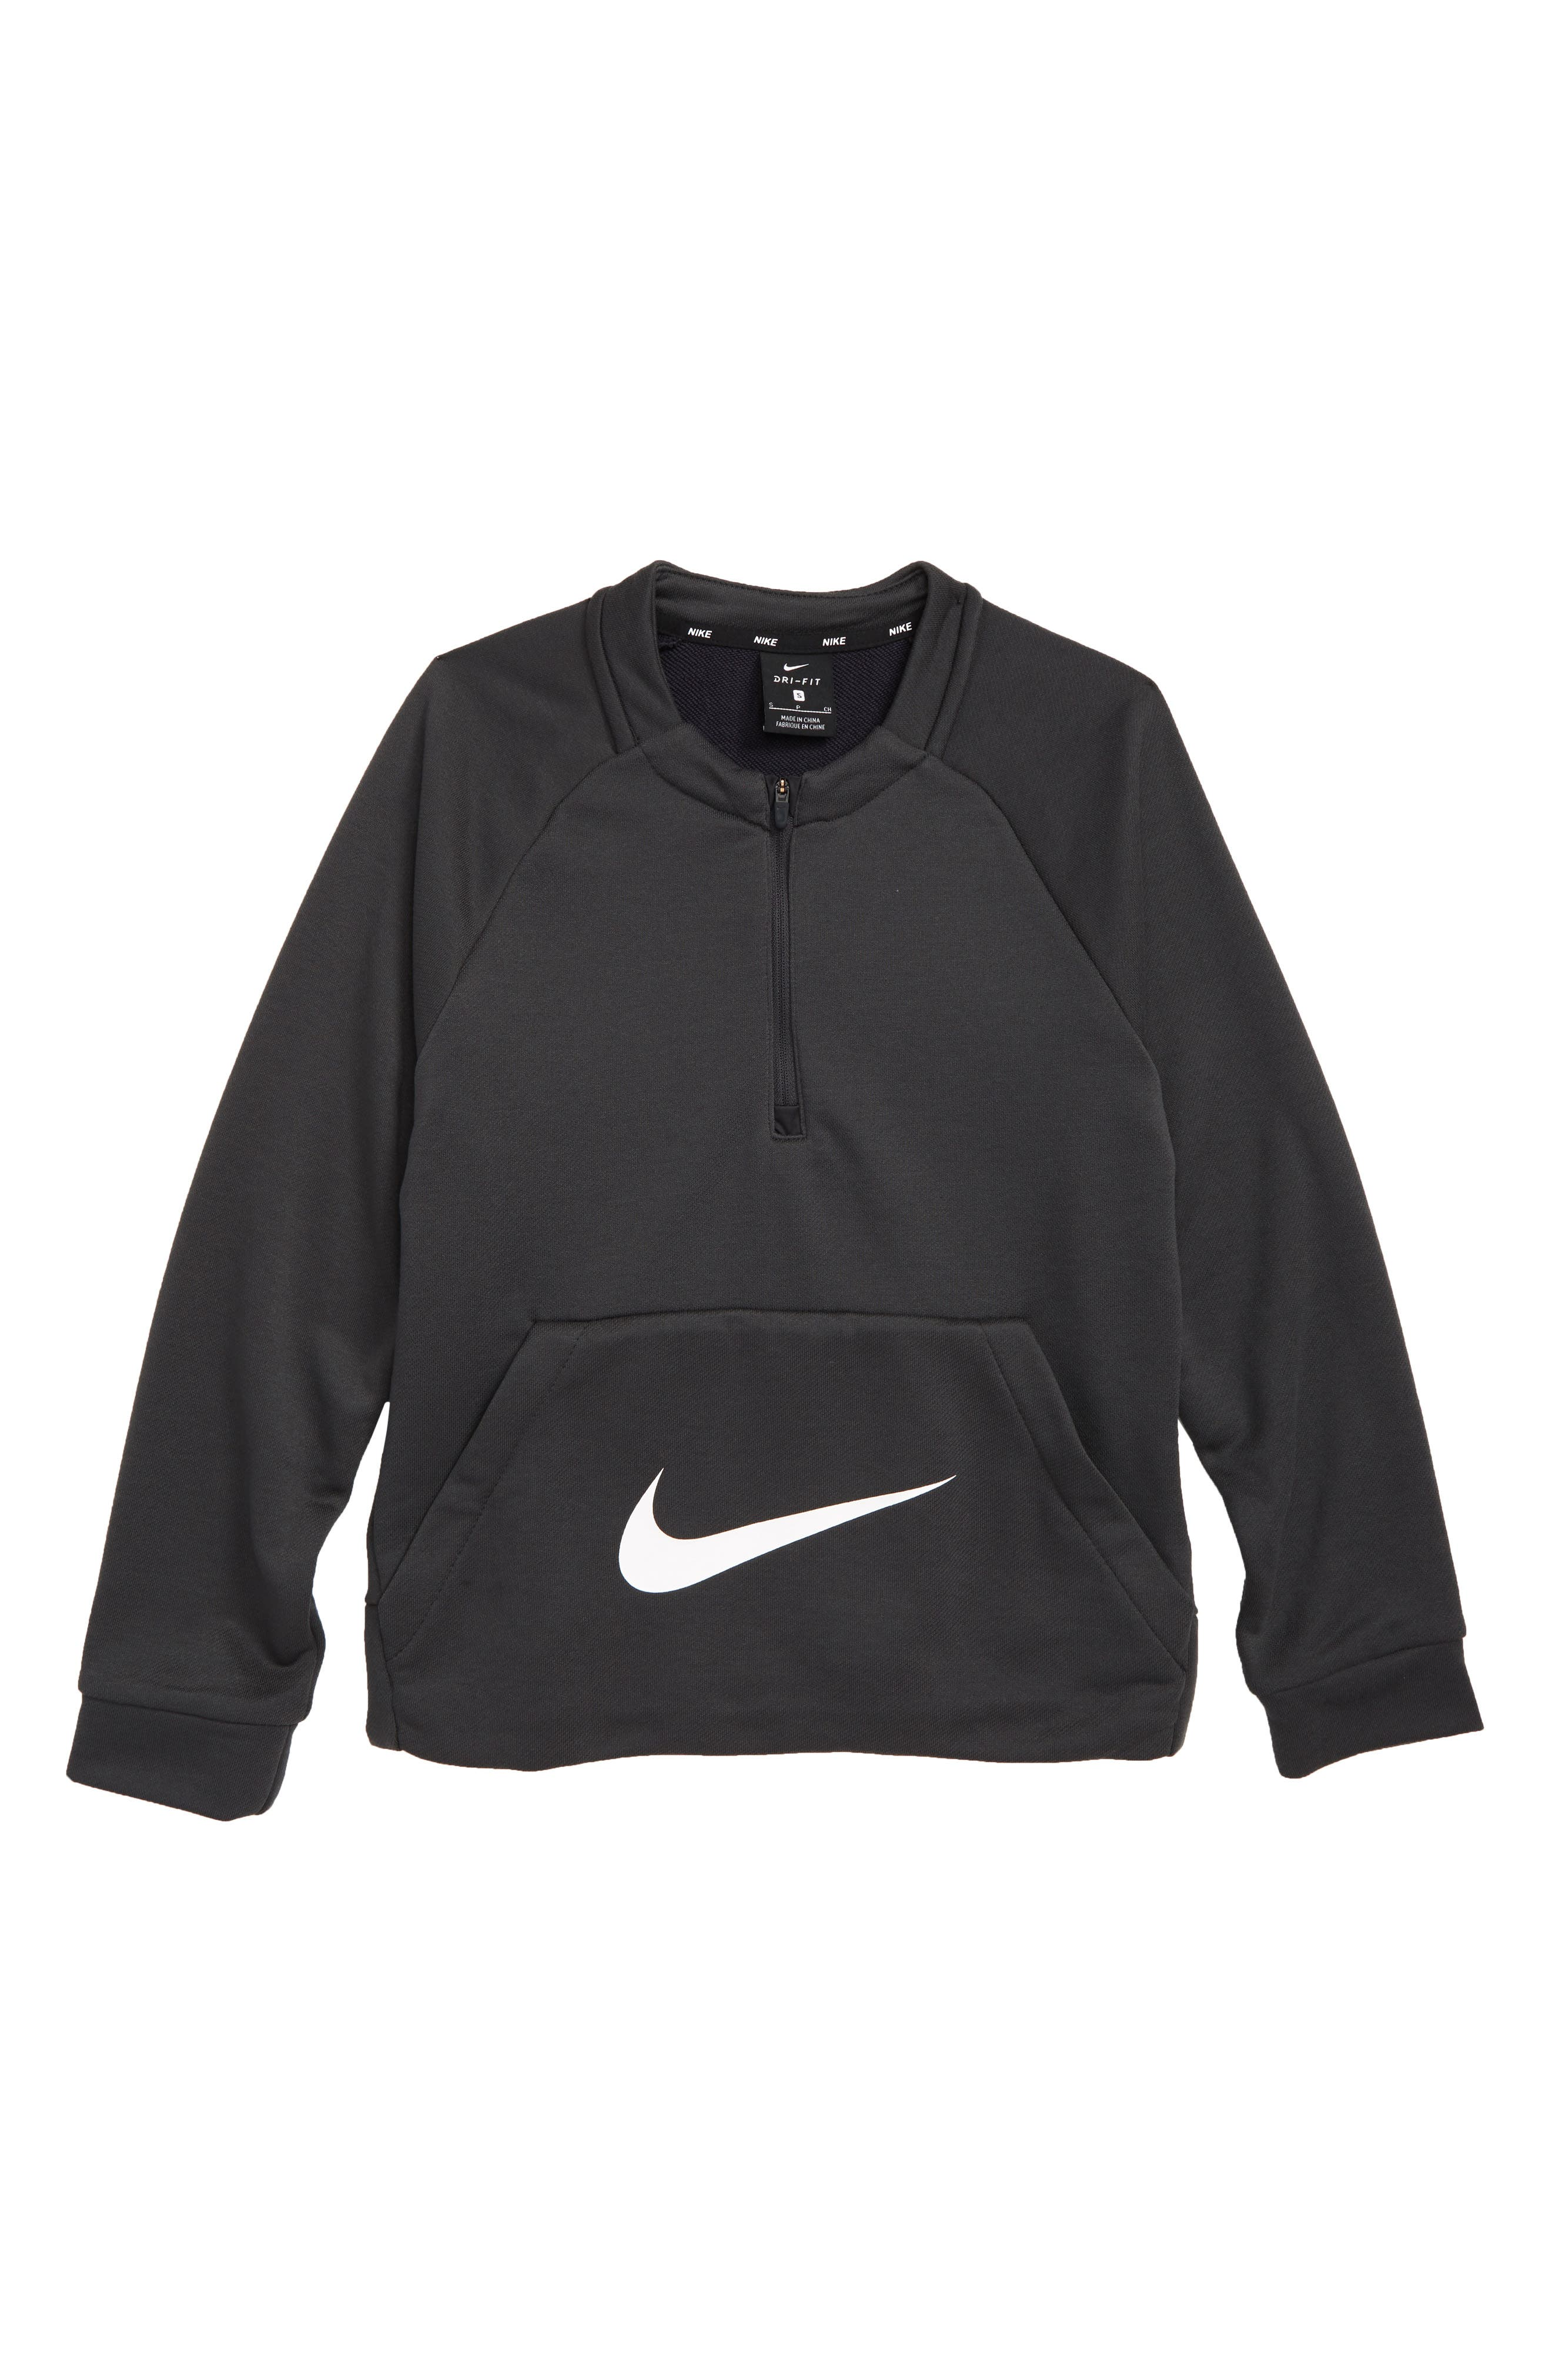 Dry Quarter Zip Pullover,                             Main thumbnail 1, color,                             ANTHRACITE/ WHITE